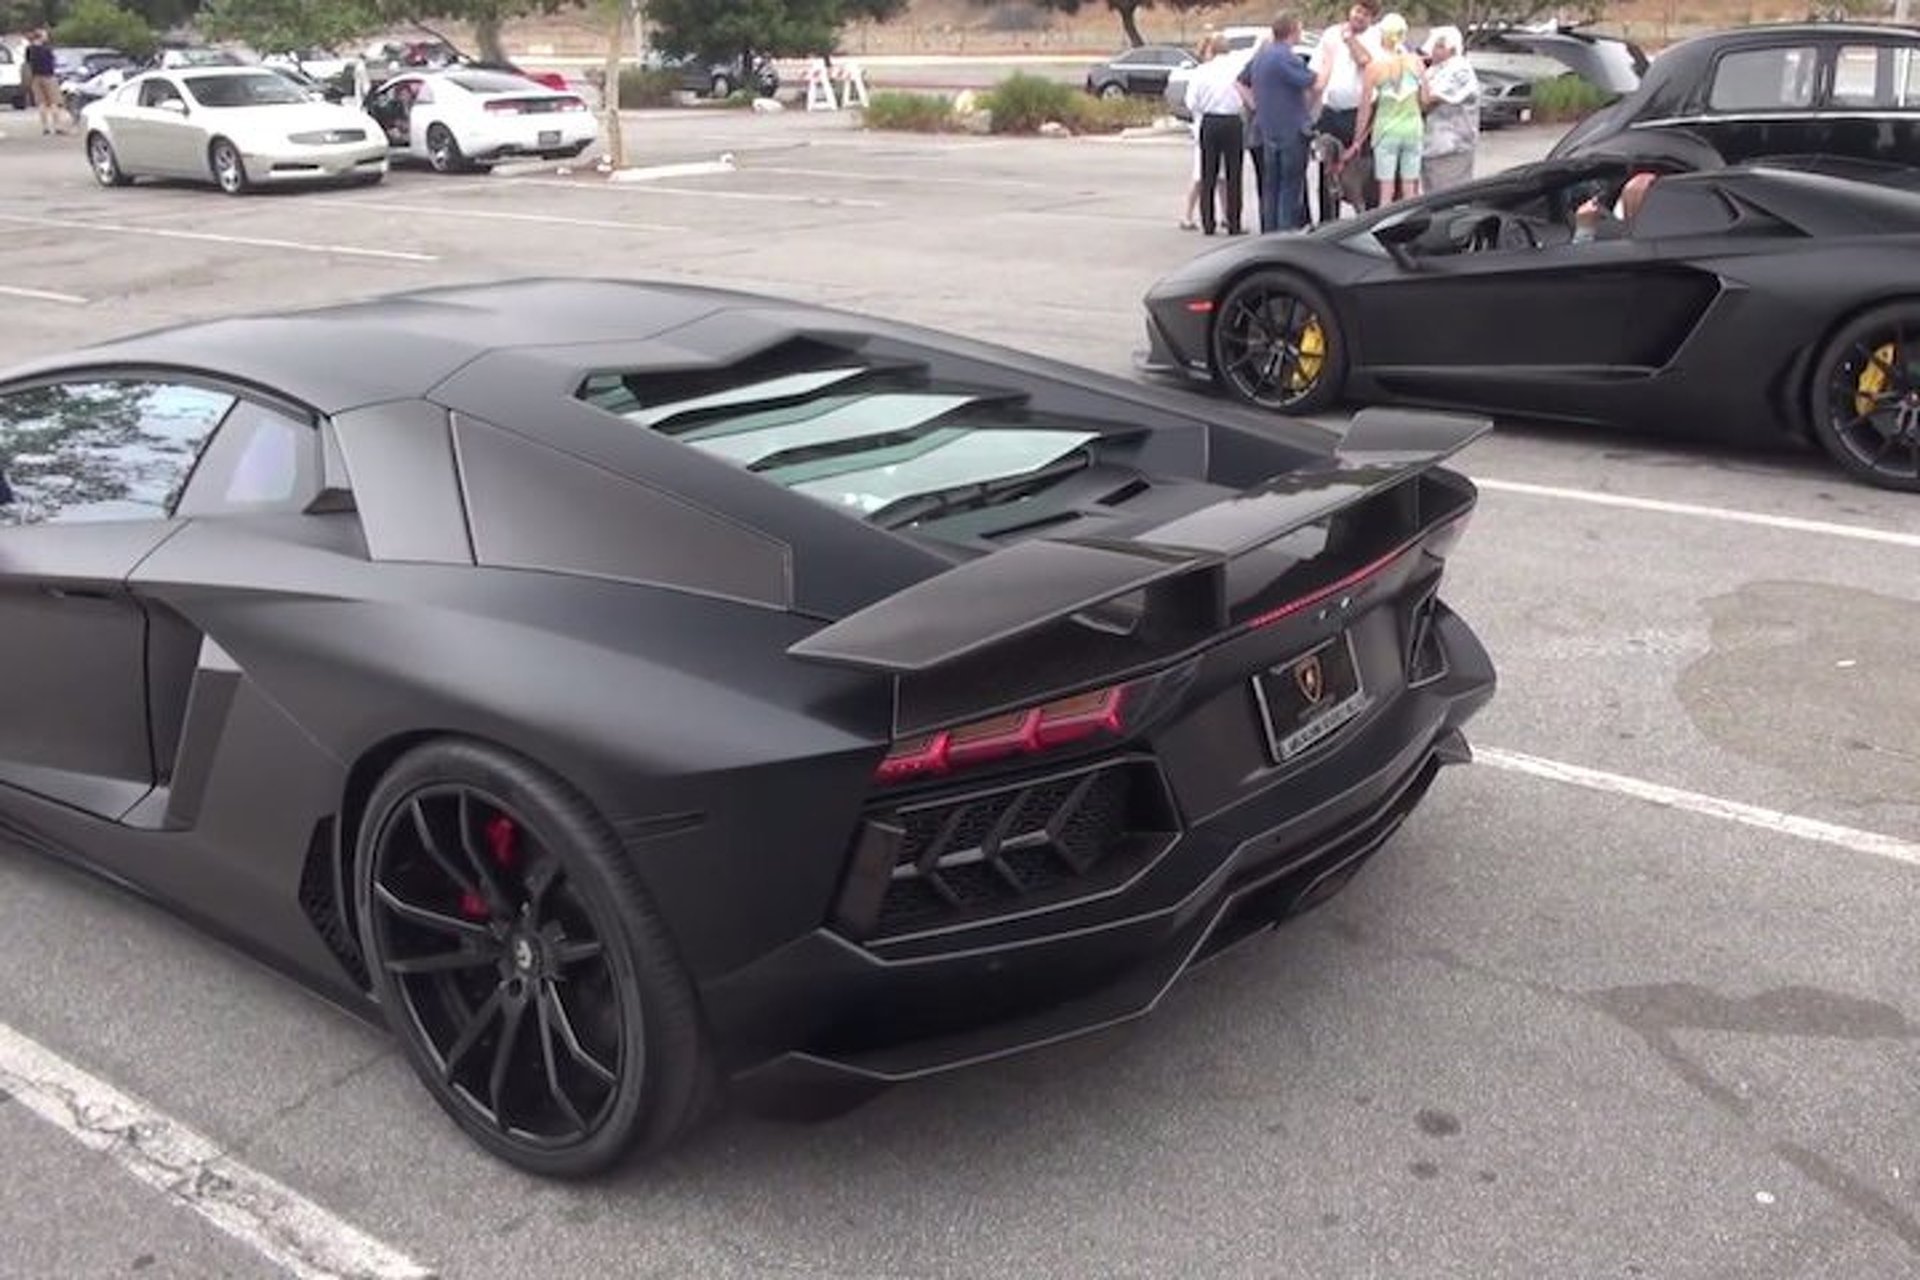 The Sights and Sounds of an Epic LA Supercar Meet